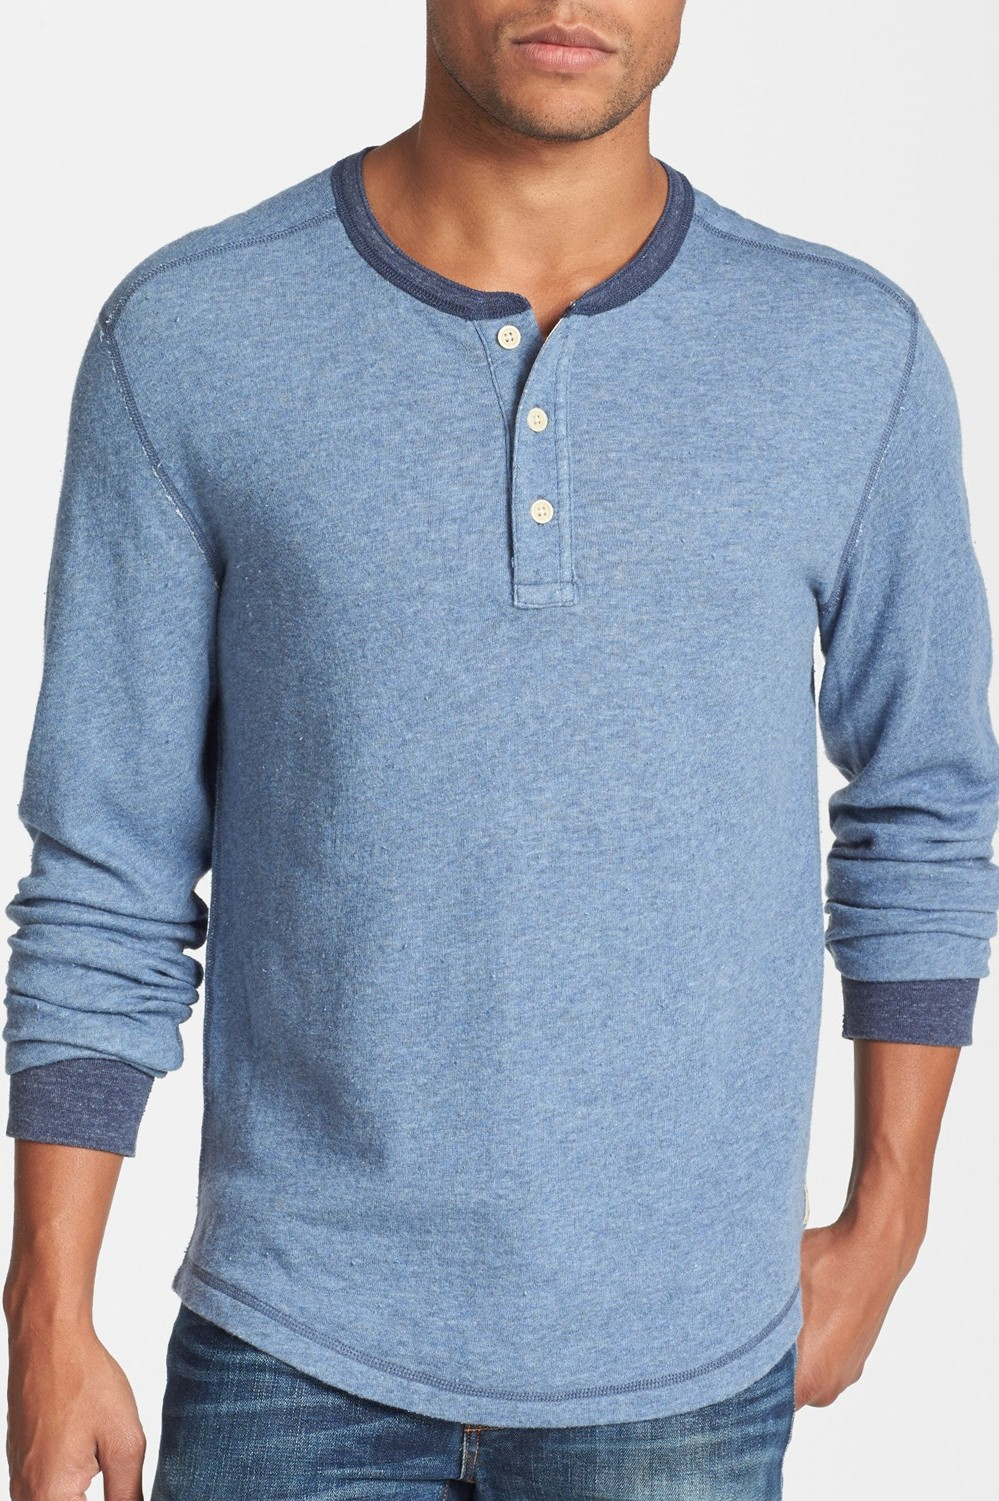 lucky-brand-blue-heather-navy-heather-long-sleeve-henley-product-manufacturer